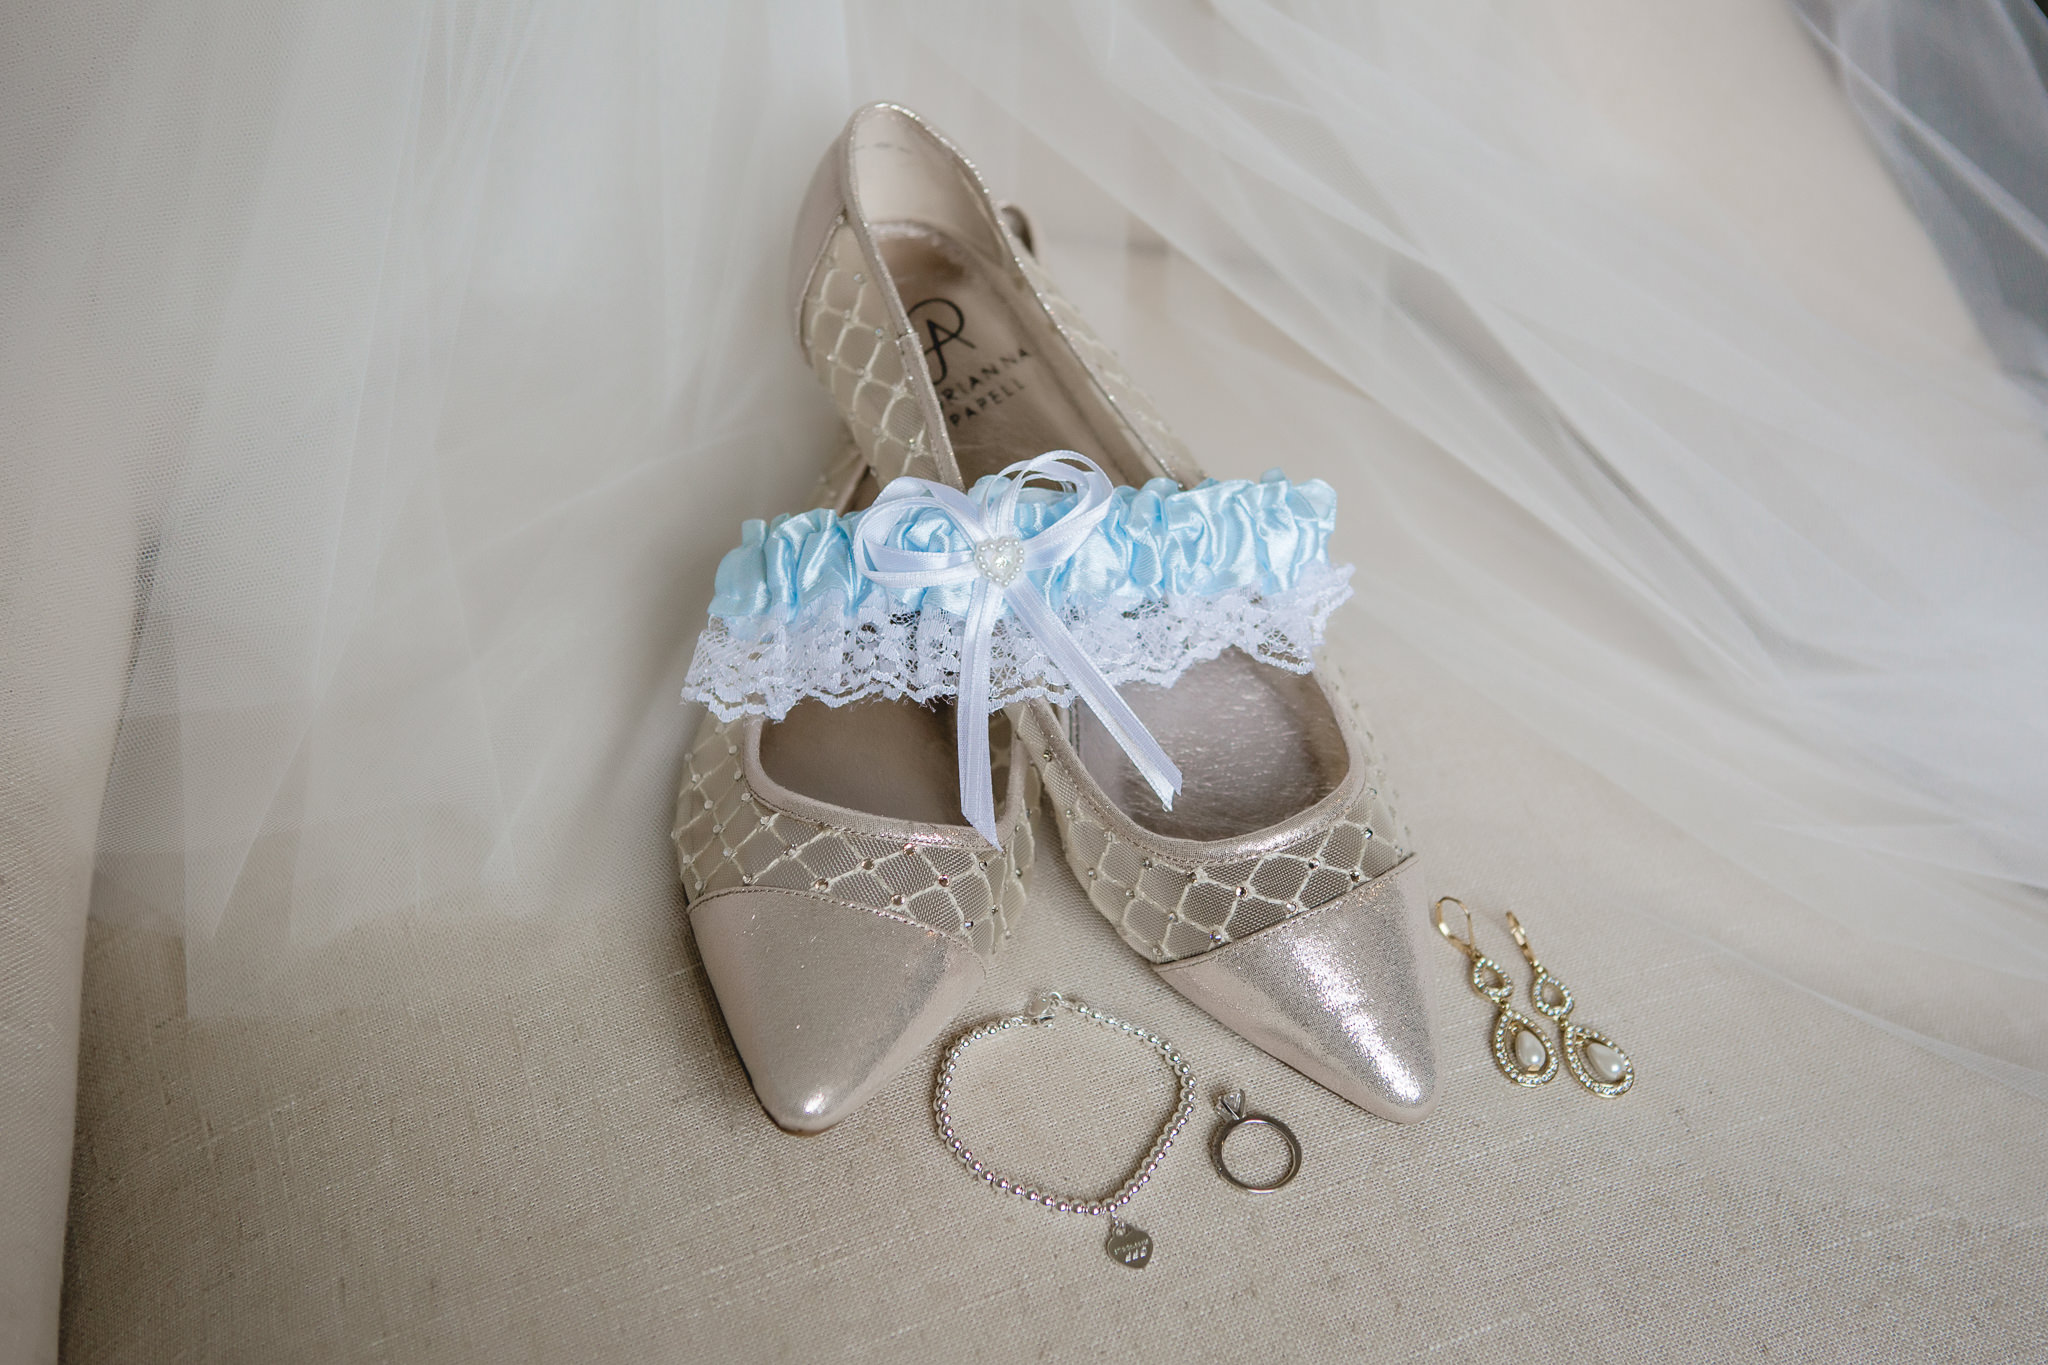 Bridal details including shoes and jewelry at Greystone Fields